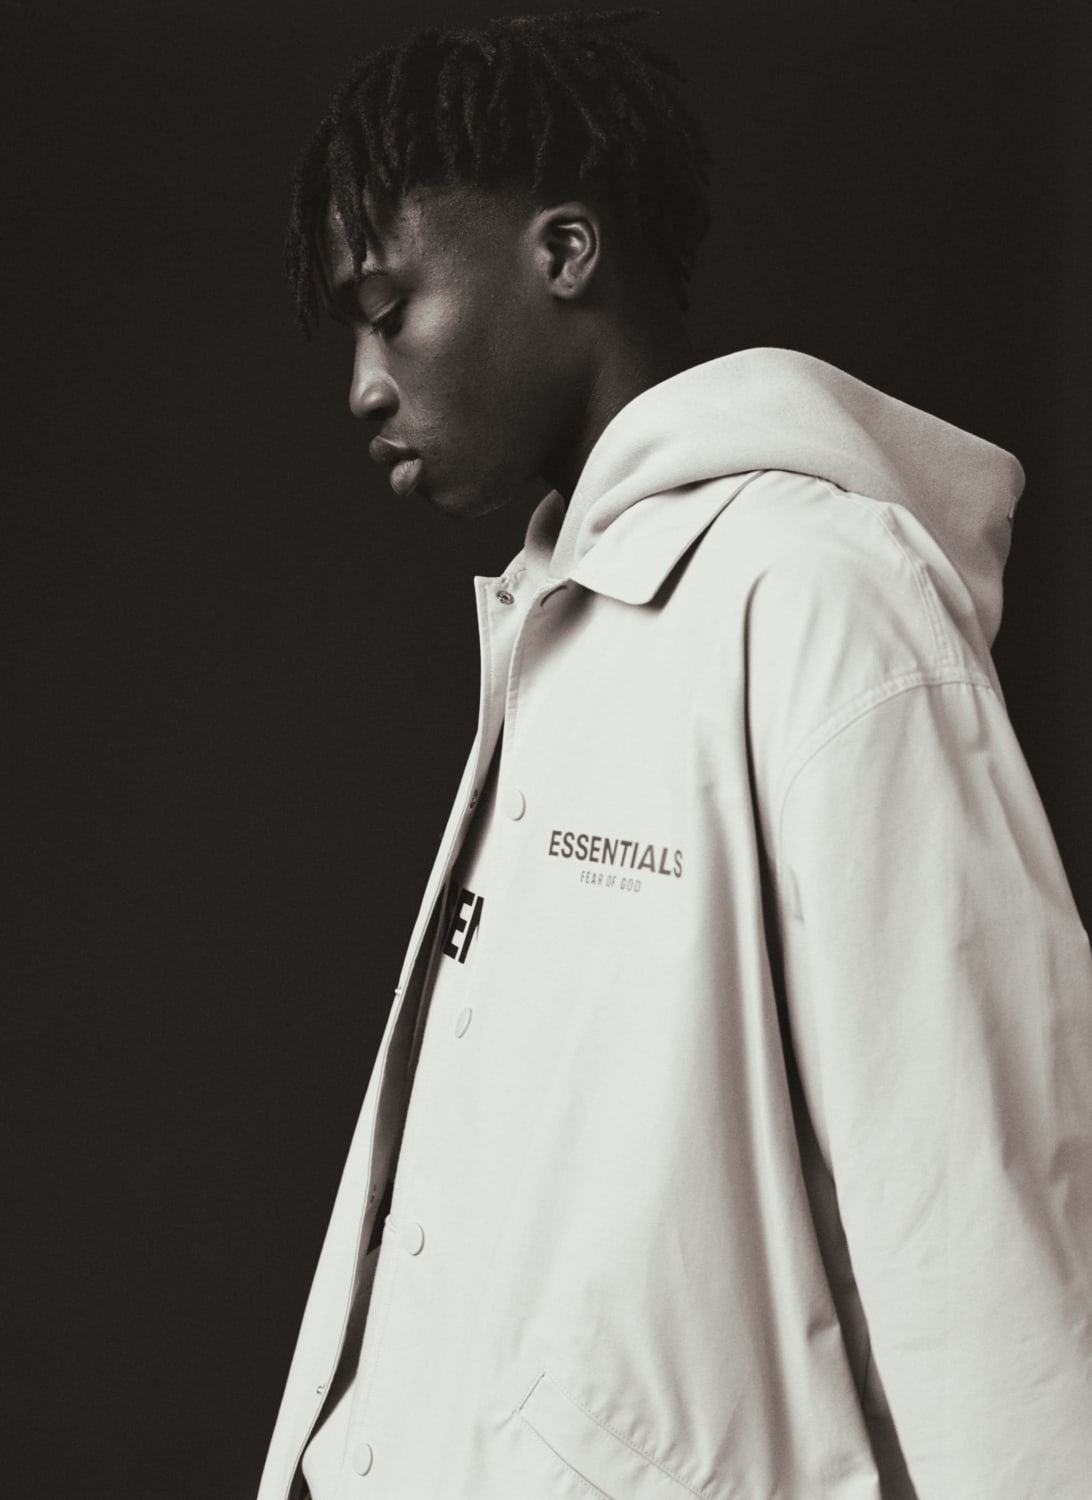 Essentials FW 2020 Lookbook Look 19